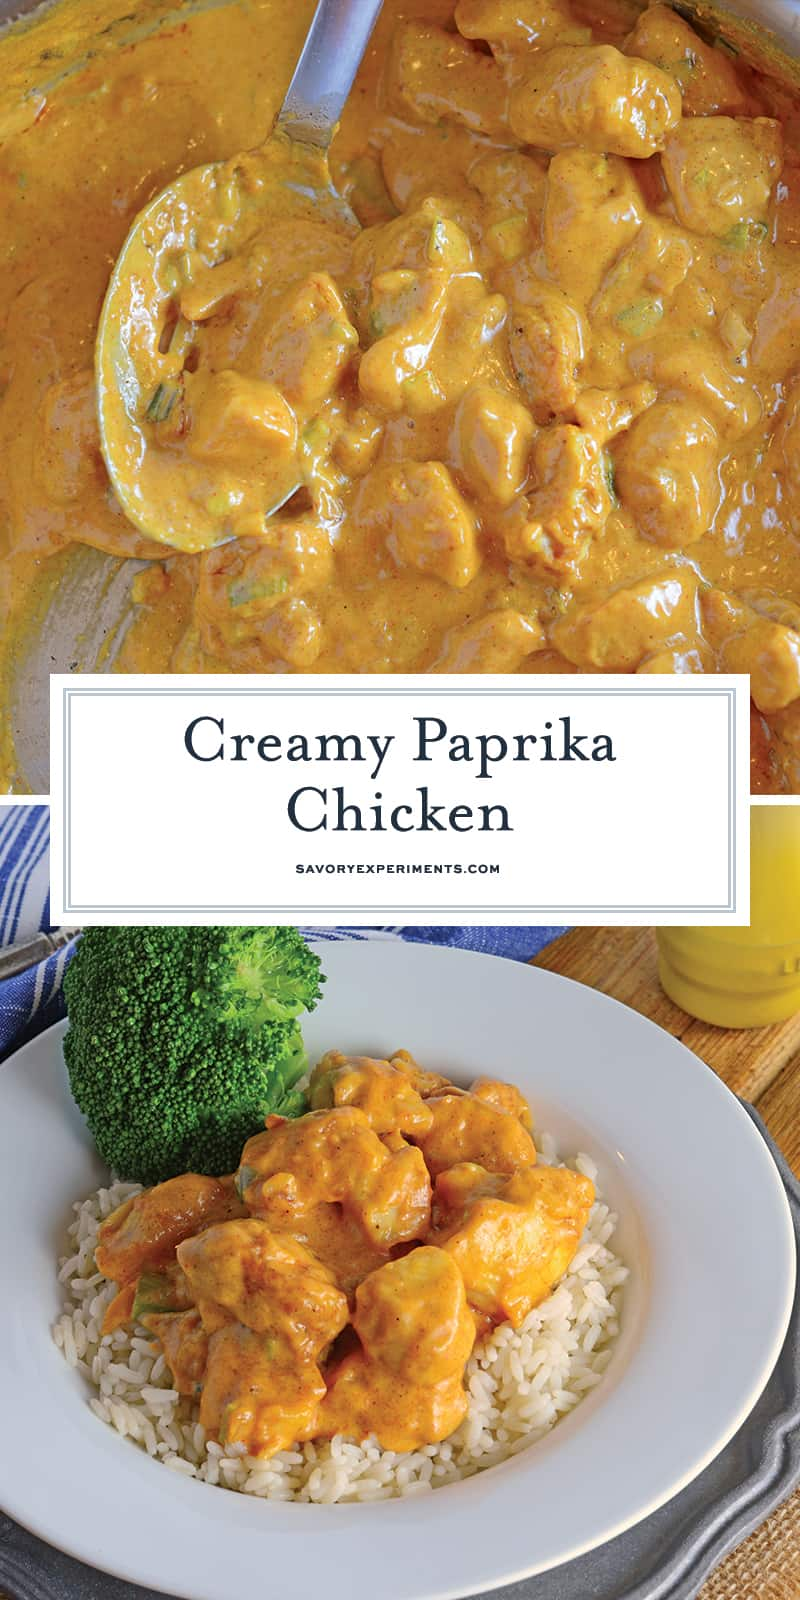 Creamy Paprika Chicken is a flavorful and easy family dinner. Crispy chicken in a creamy paprika sauce with garlic and scallions. #easychickenrecipes #paprikachicken www.savoryexperiments.com